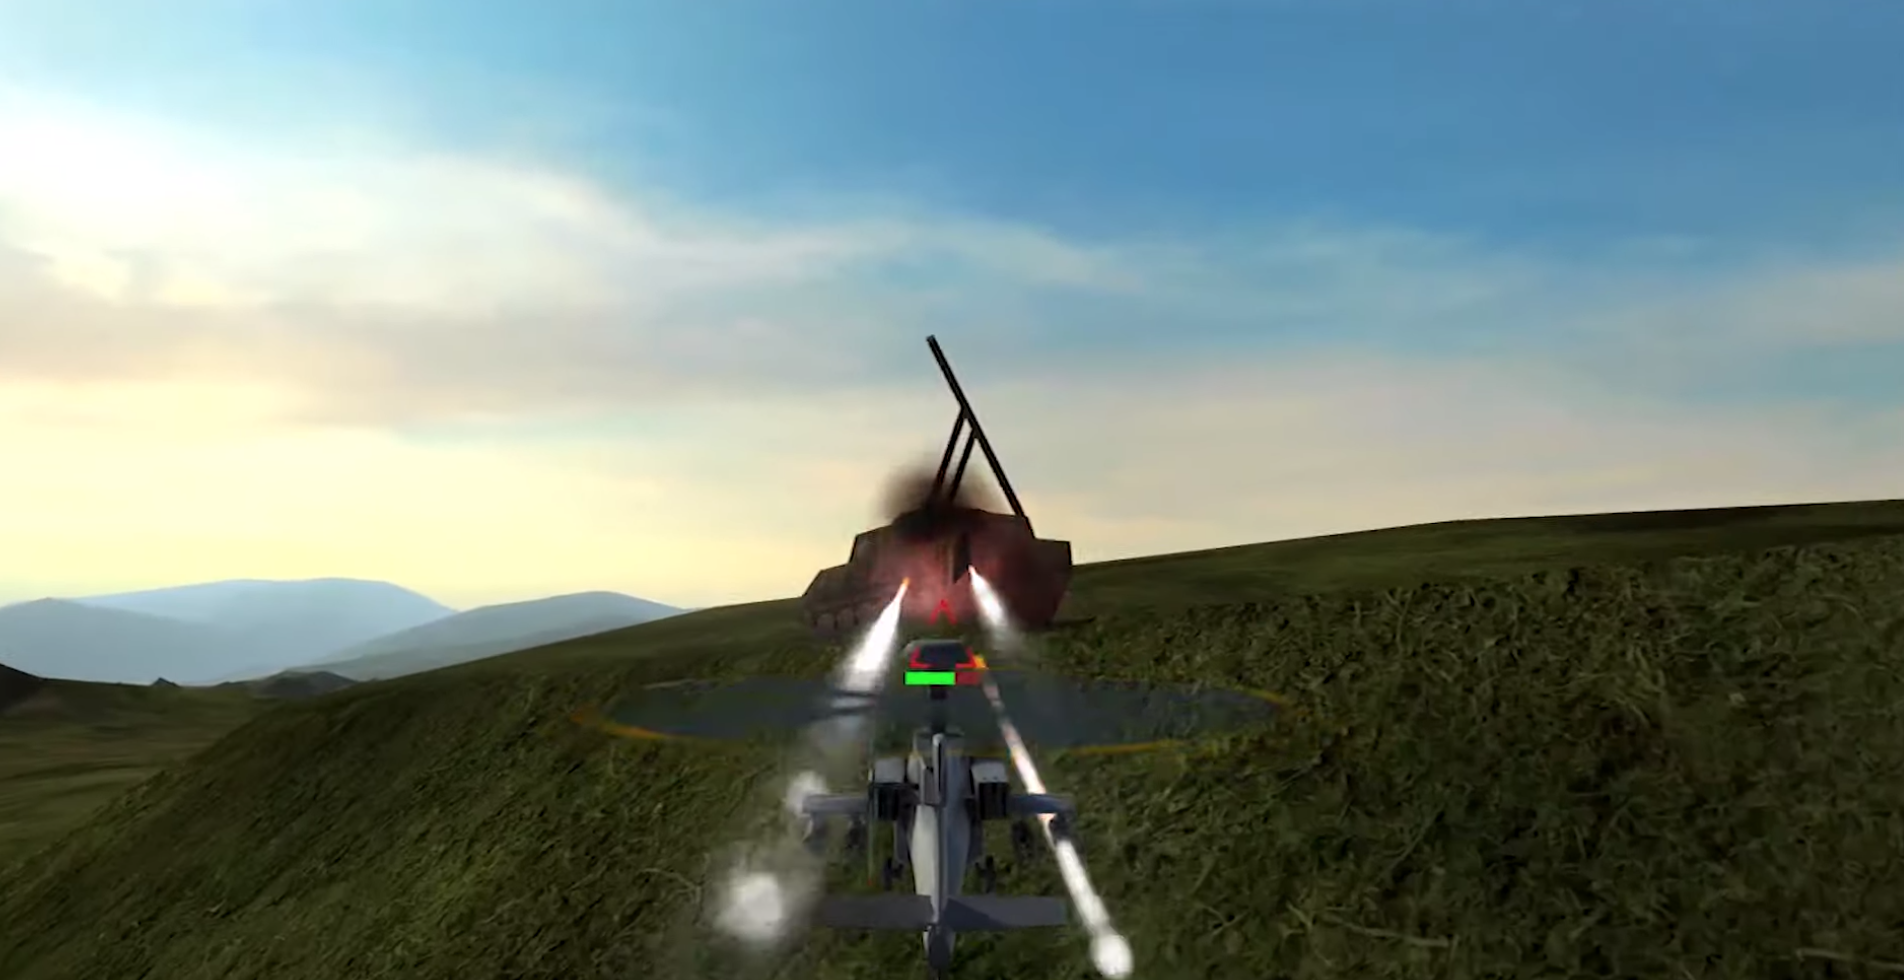 Fly combat missions for India's Air Force in this new video game